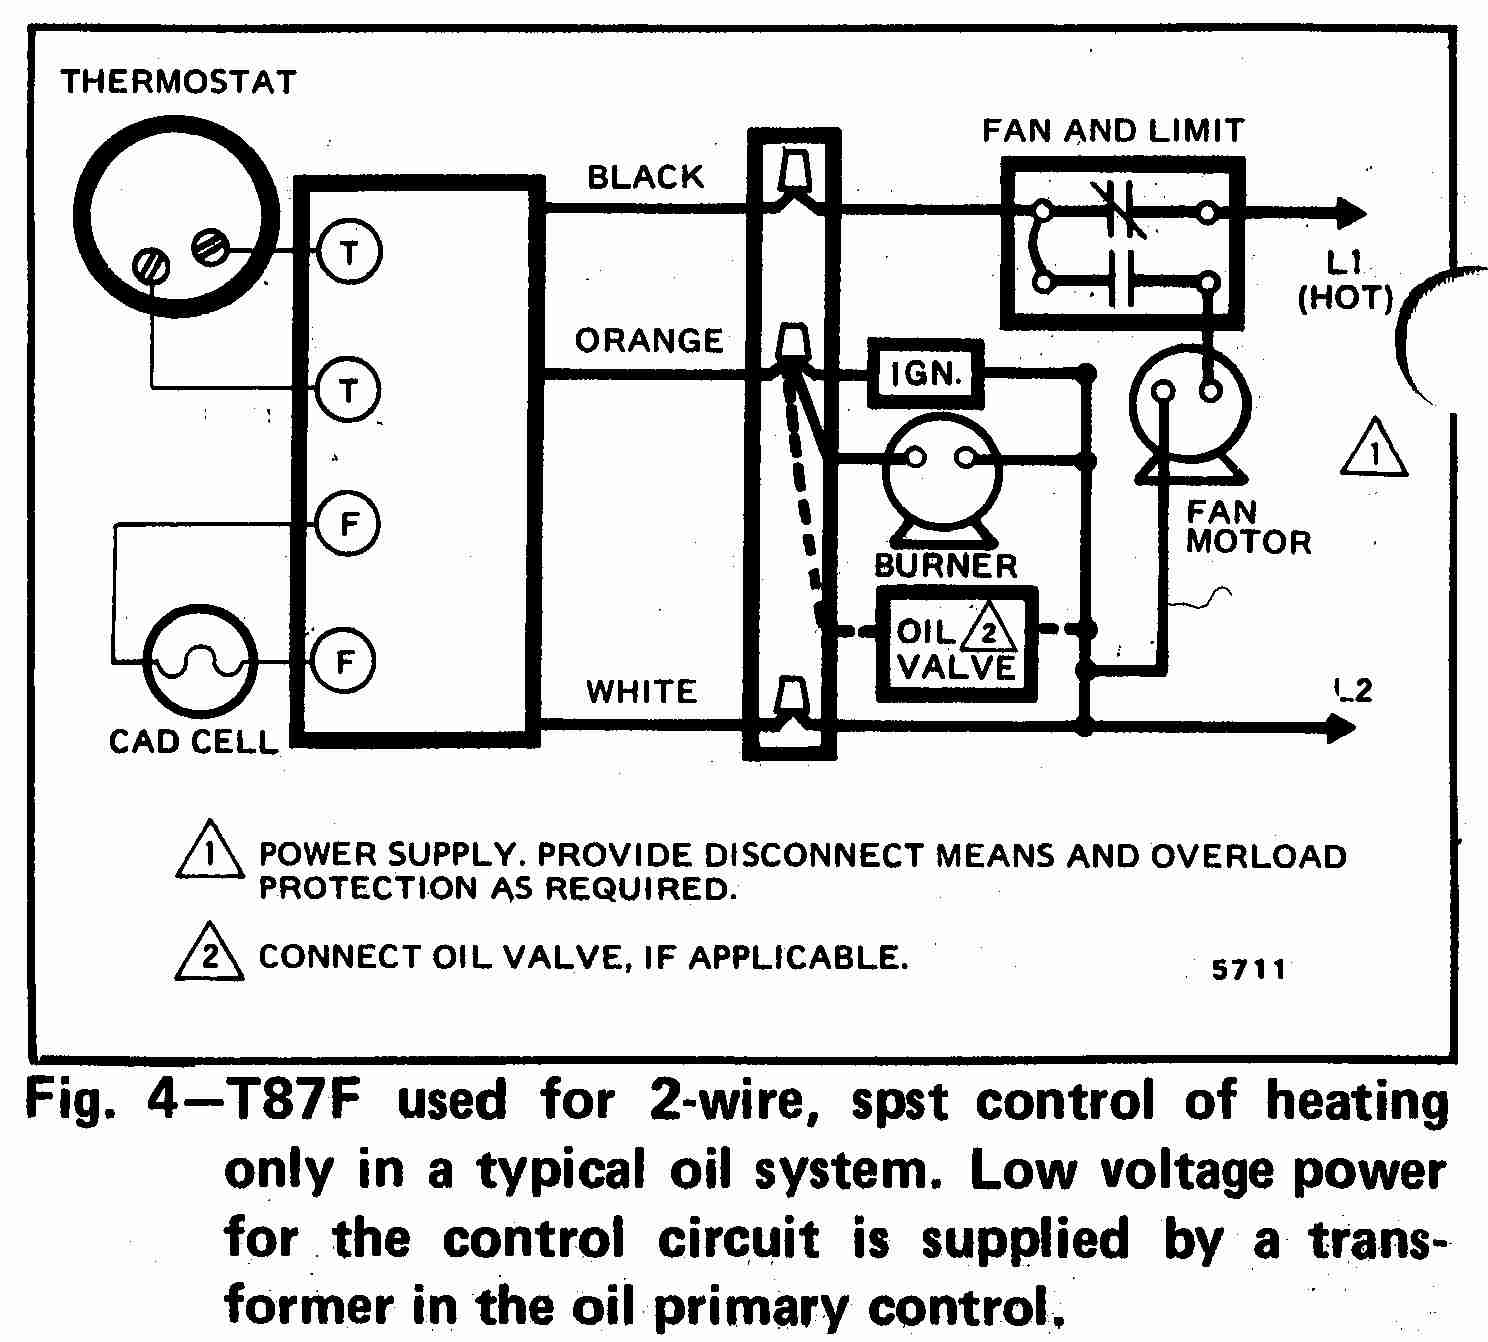 TT_T87F_0002_2W_DJF room thermostat wiring diagrams for hvac systems honeywell rth2300 wiring diagram at eliteediting.co